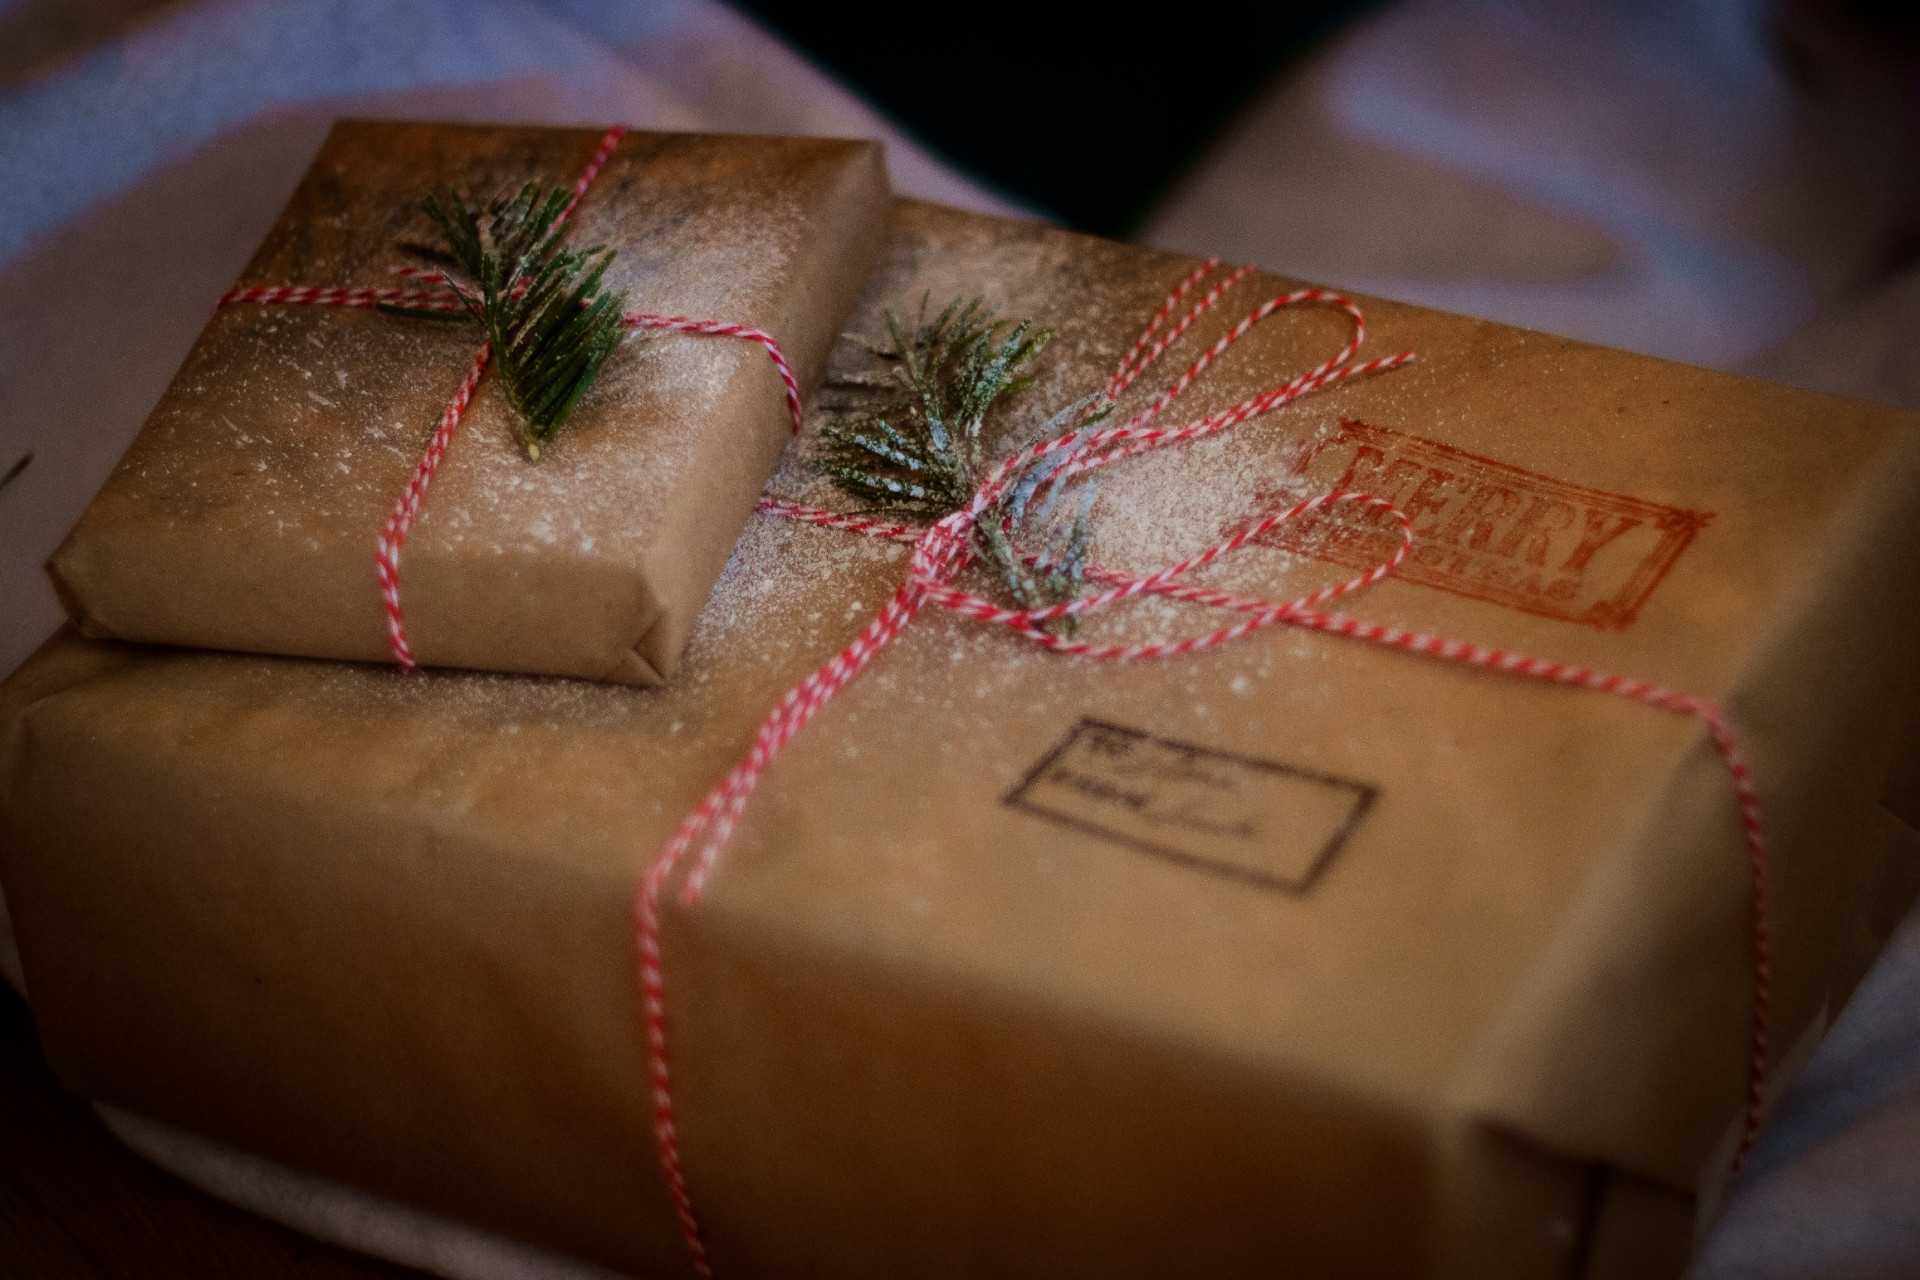 Christmas presents in brown paper